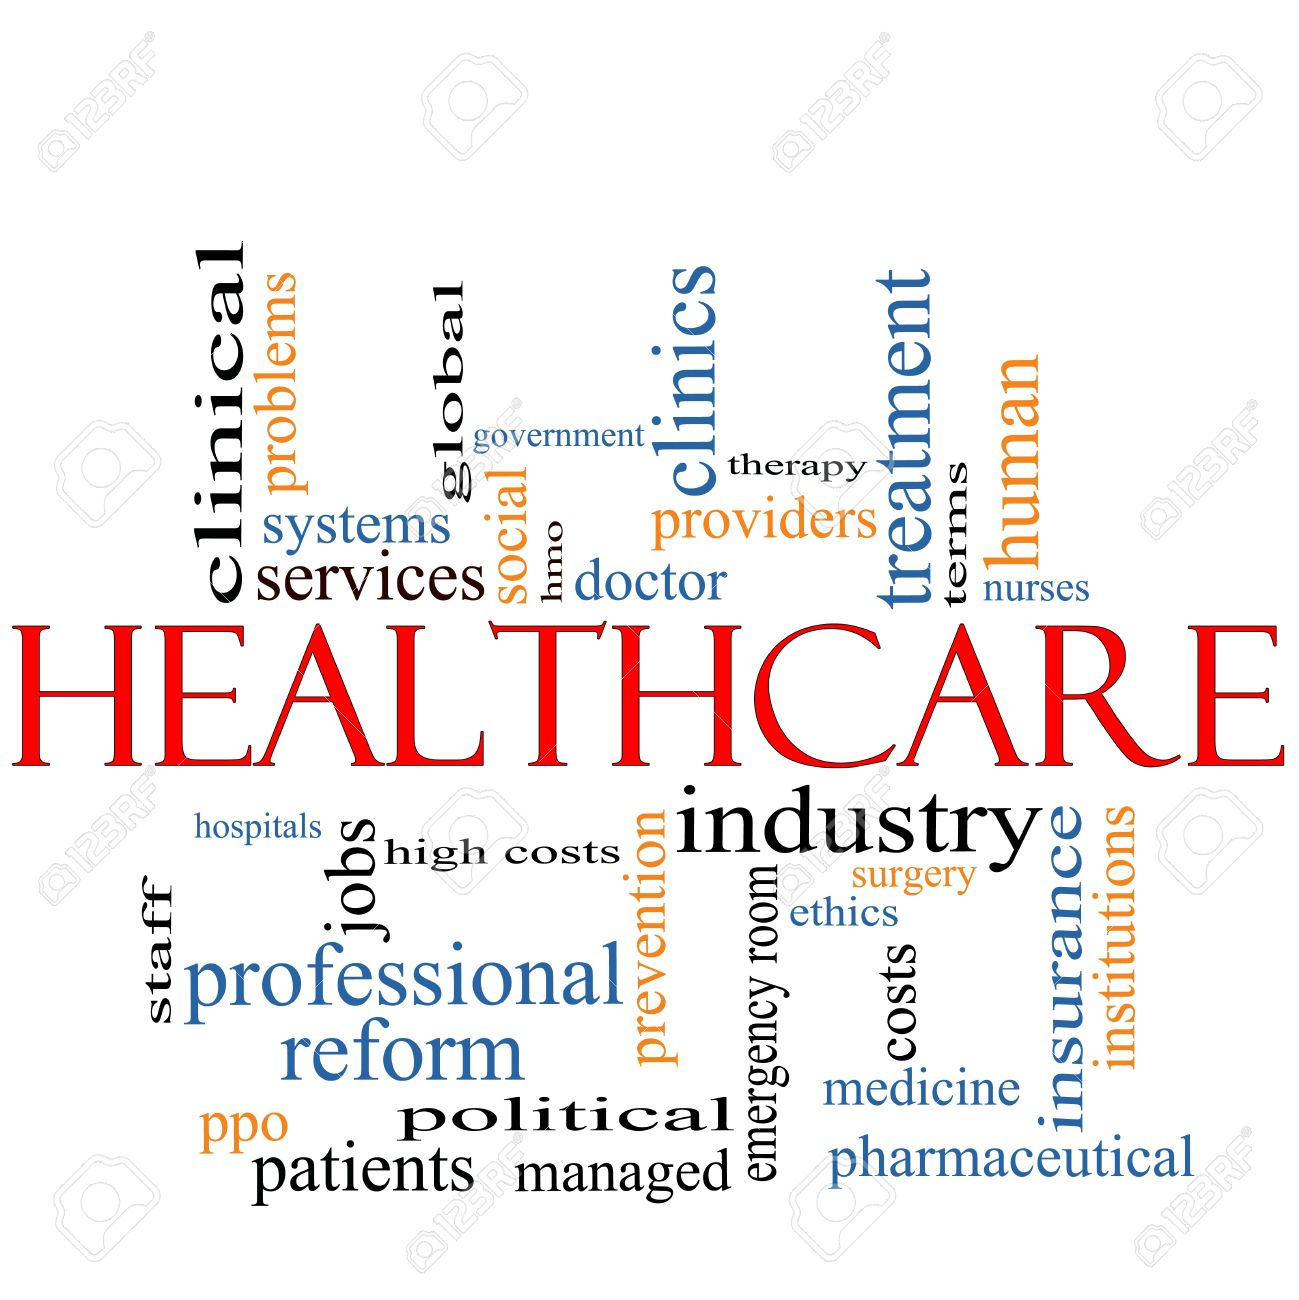 A Healthcare word cloud concept with terms such as reform, industry, insurance, hospital, doctor, nursers and more. Stock Photo - 12336513